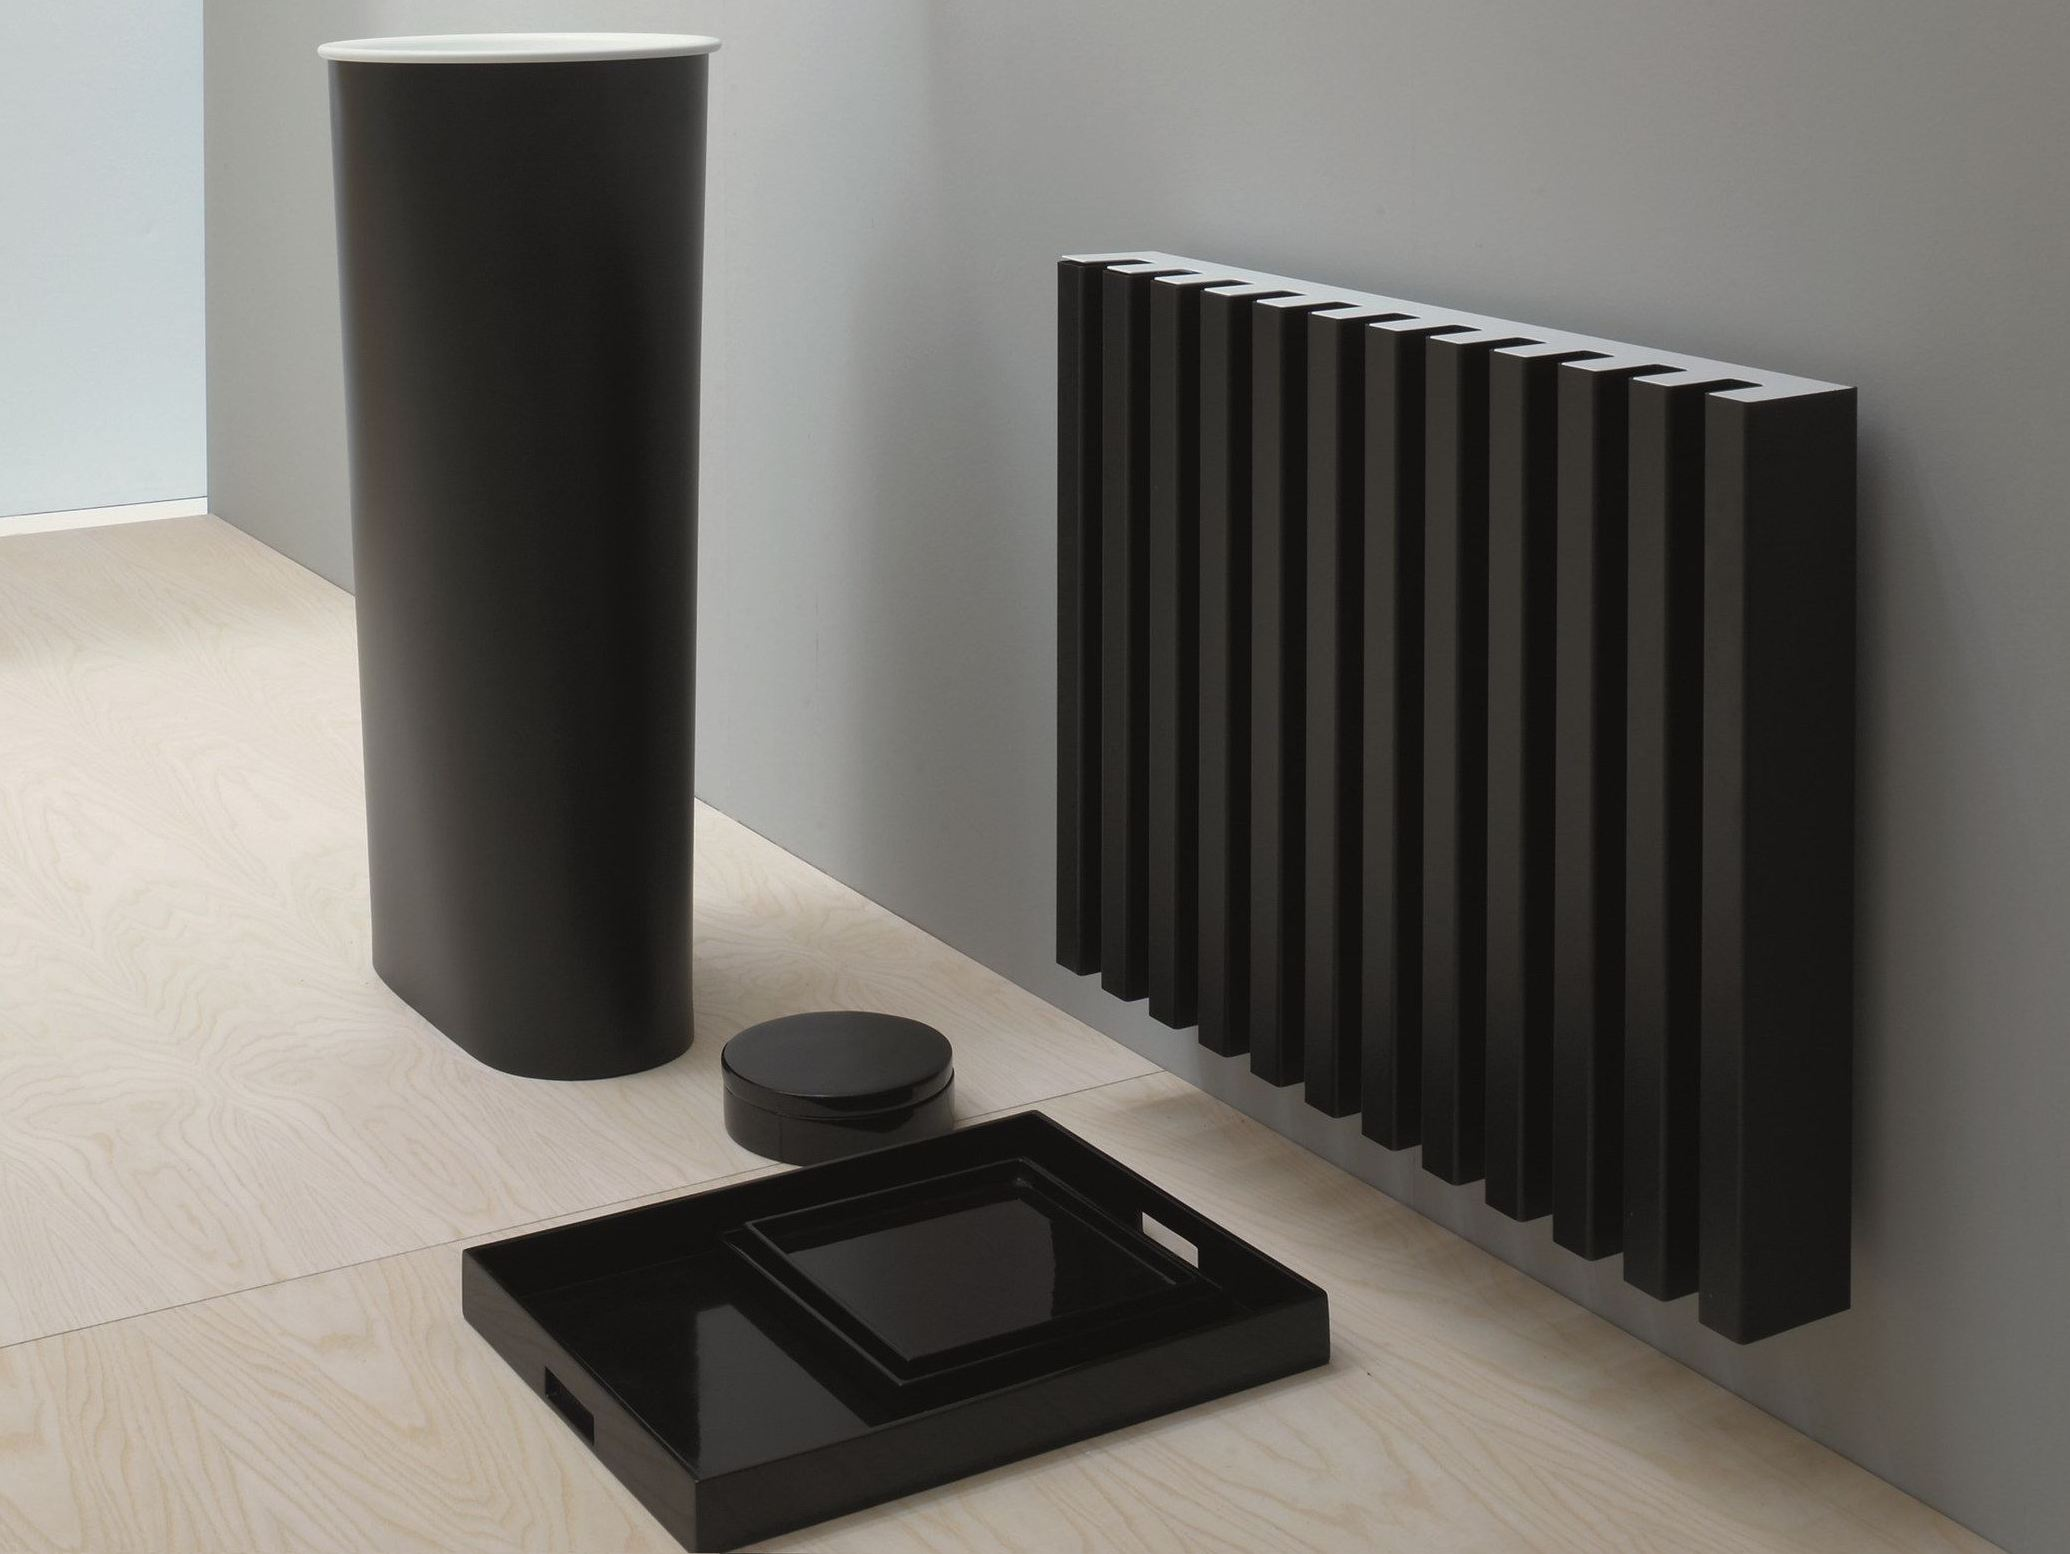 Soho Horizontal Radiator By Tubes Radiatori Design